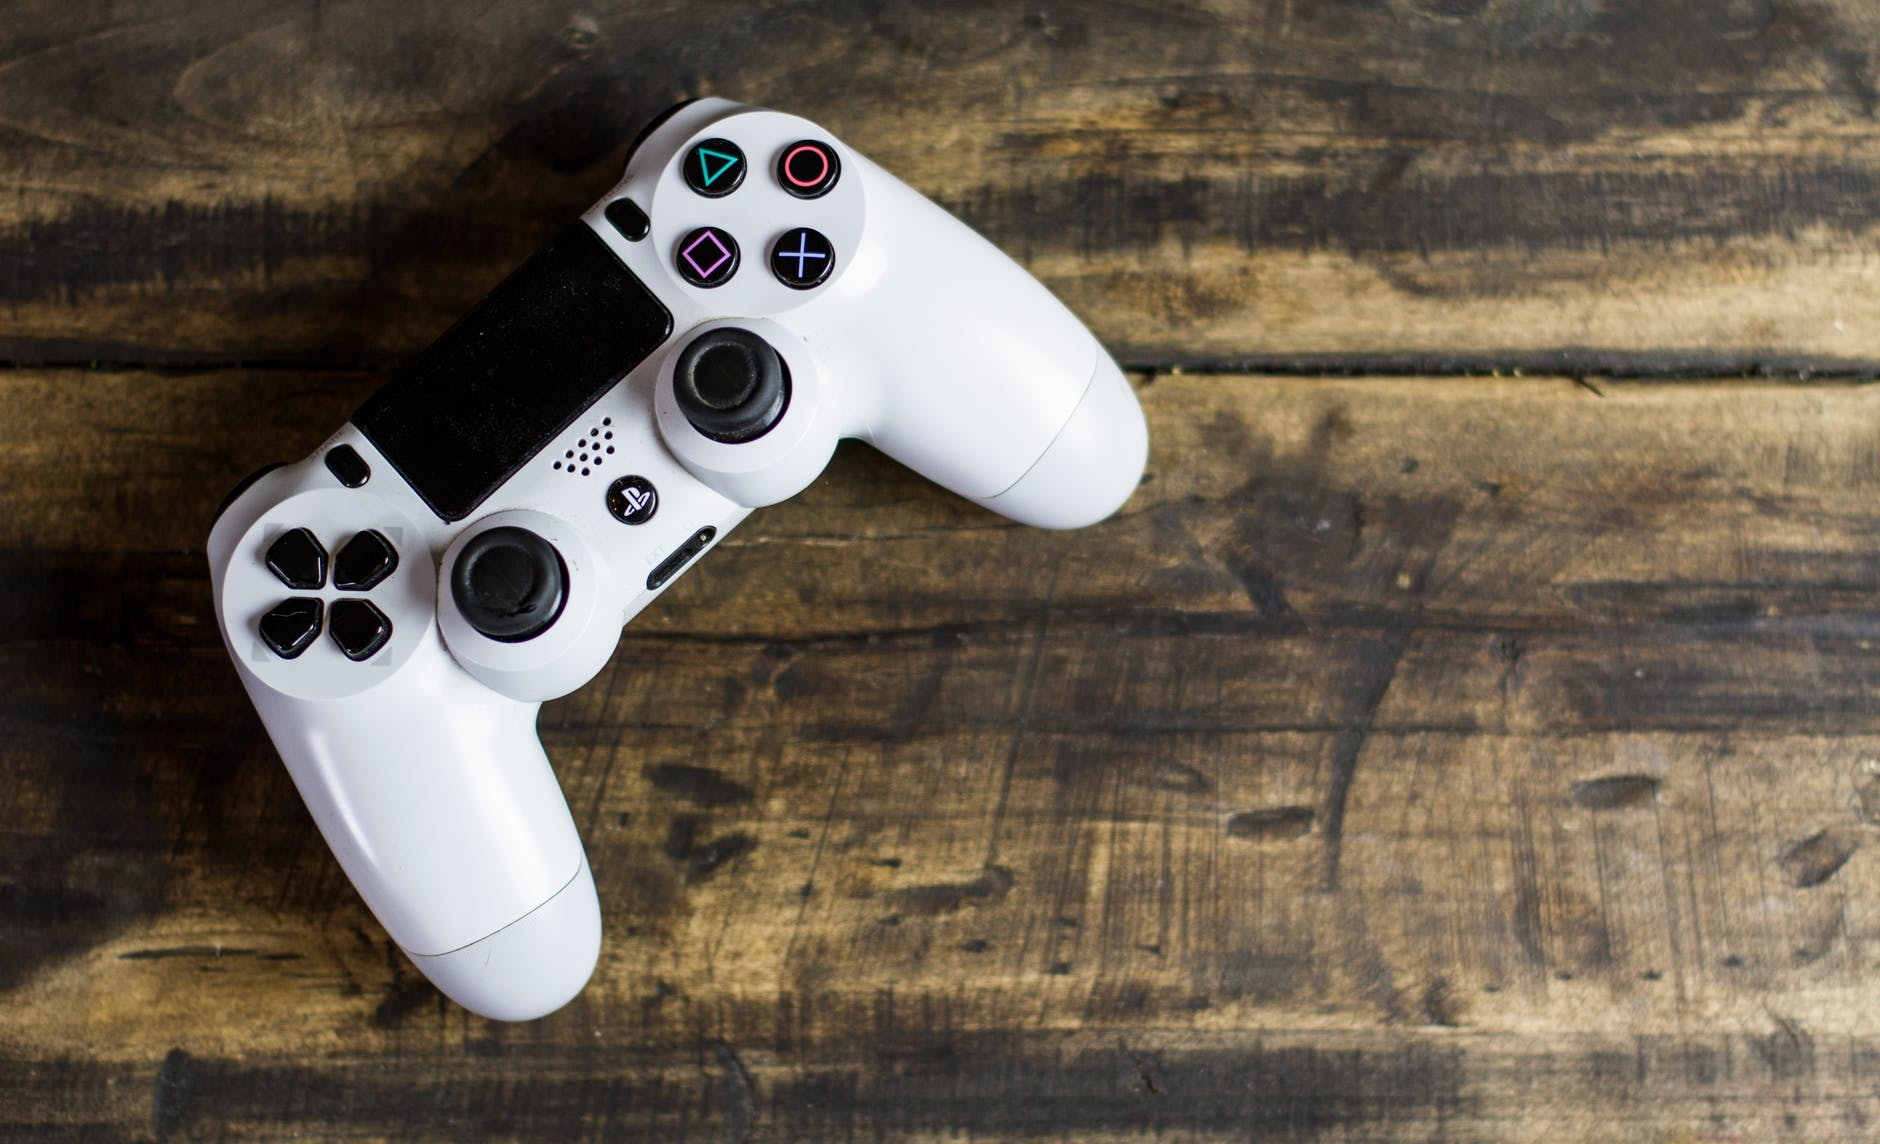 how to find lost ps3 controller,how to find a lost ps3 controller,how to find your lost ps3 controller,how to find a ps3 controller when lost,how to find my lost ps3 controller,how to find ps3 controller if lost,how to find ps3 controller when lost,how to find your ps3 controller when lost